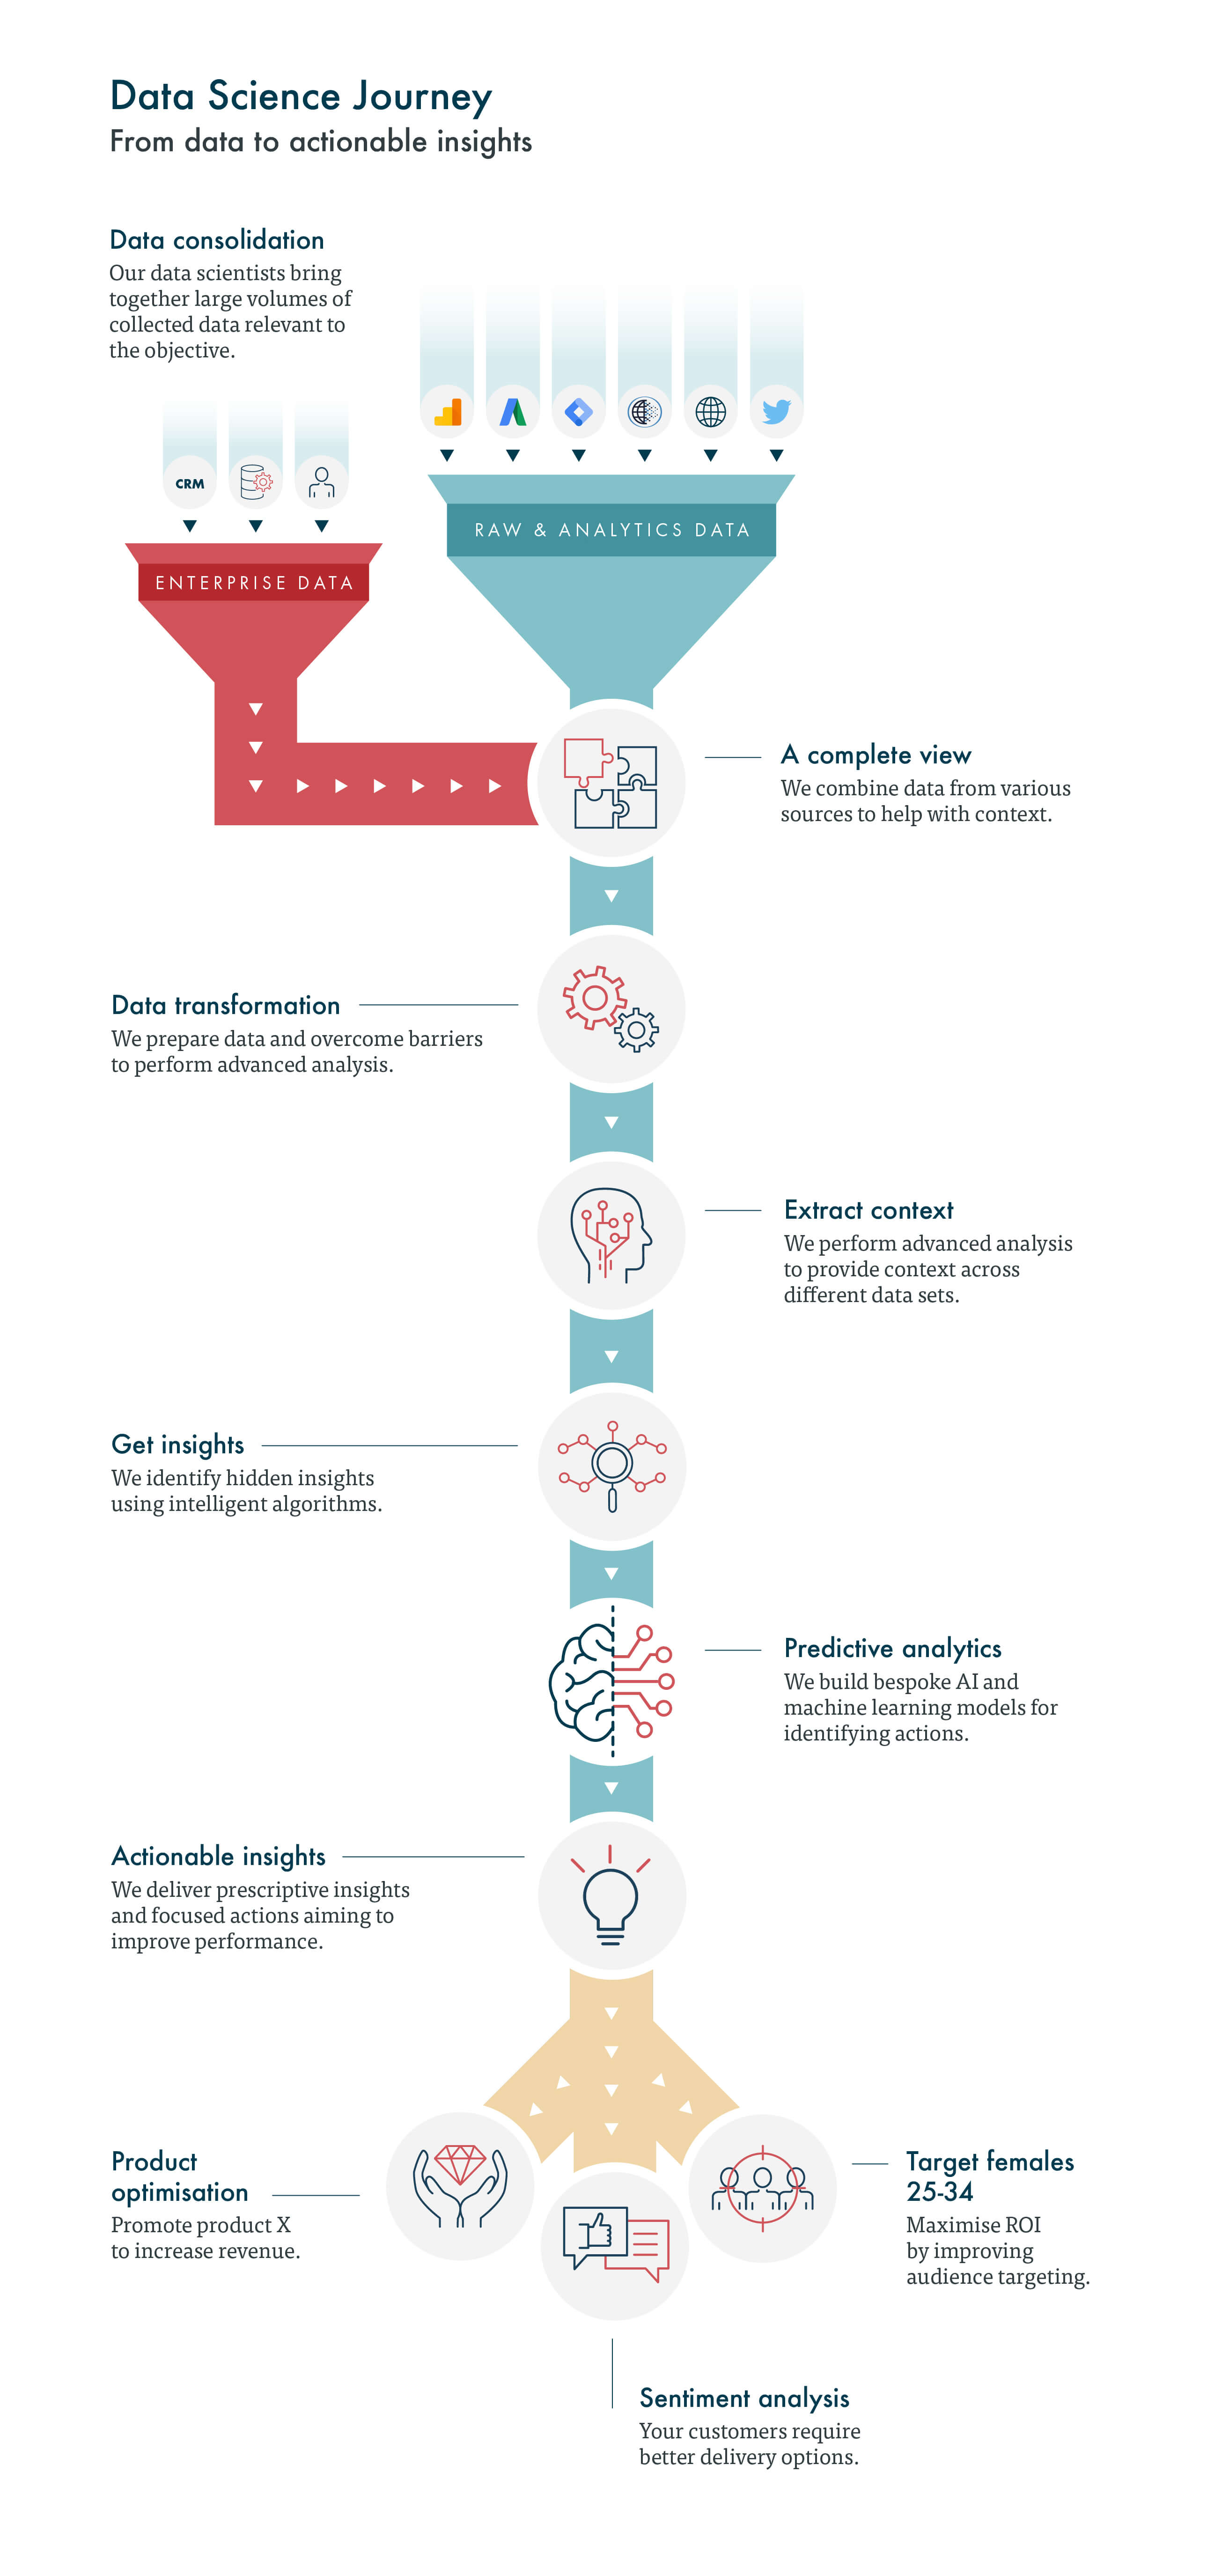 How data science transforms raw analytics information into insights leading to actions